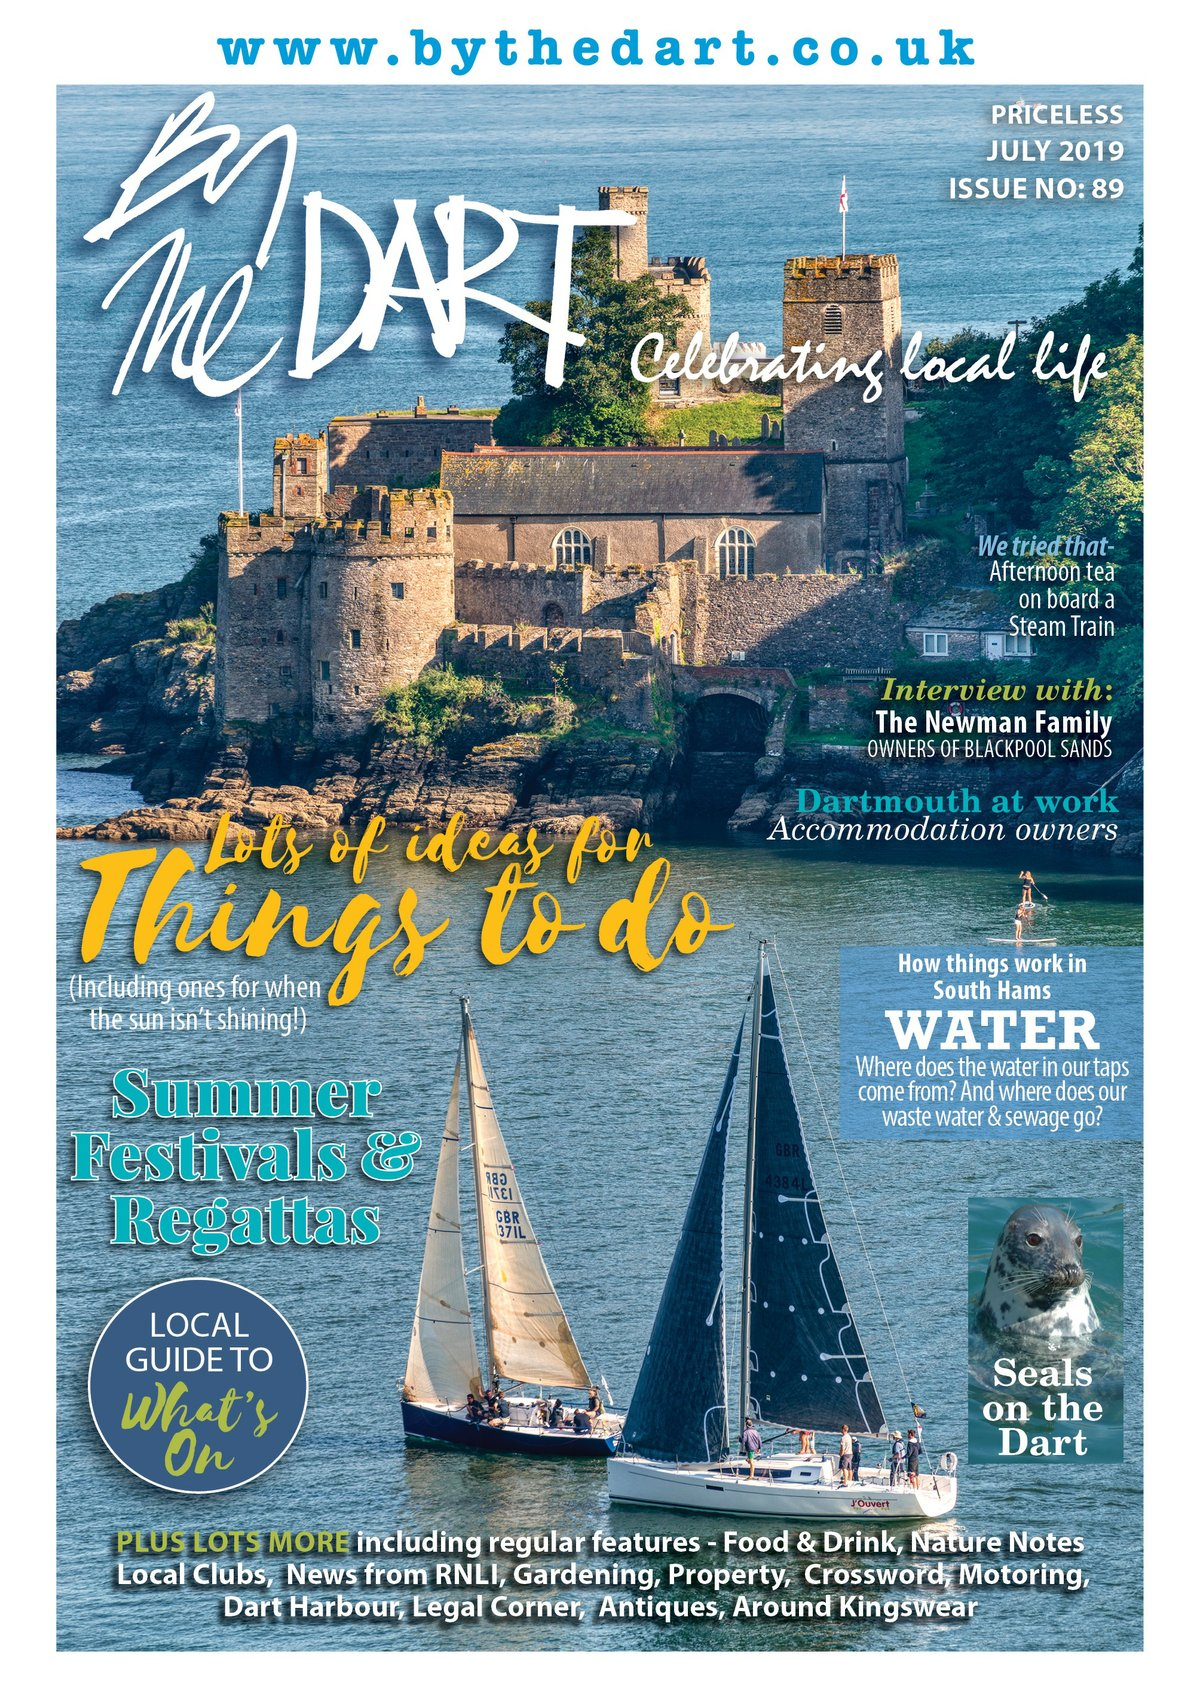 By The Dart July issue